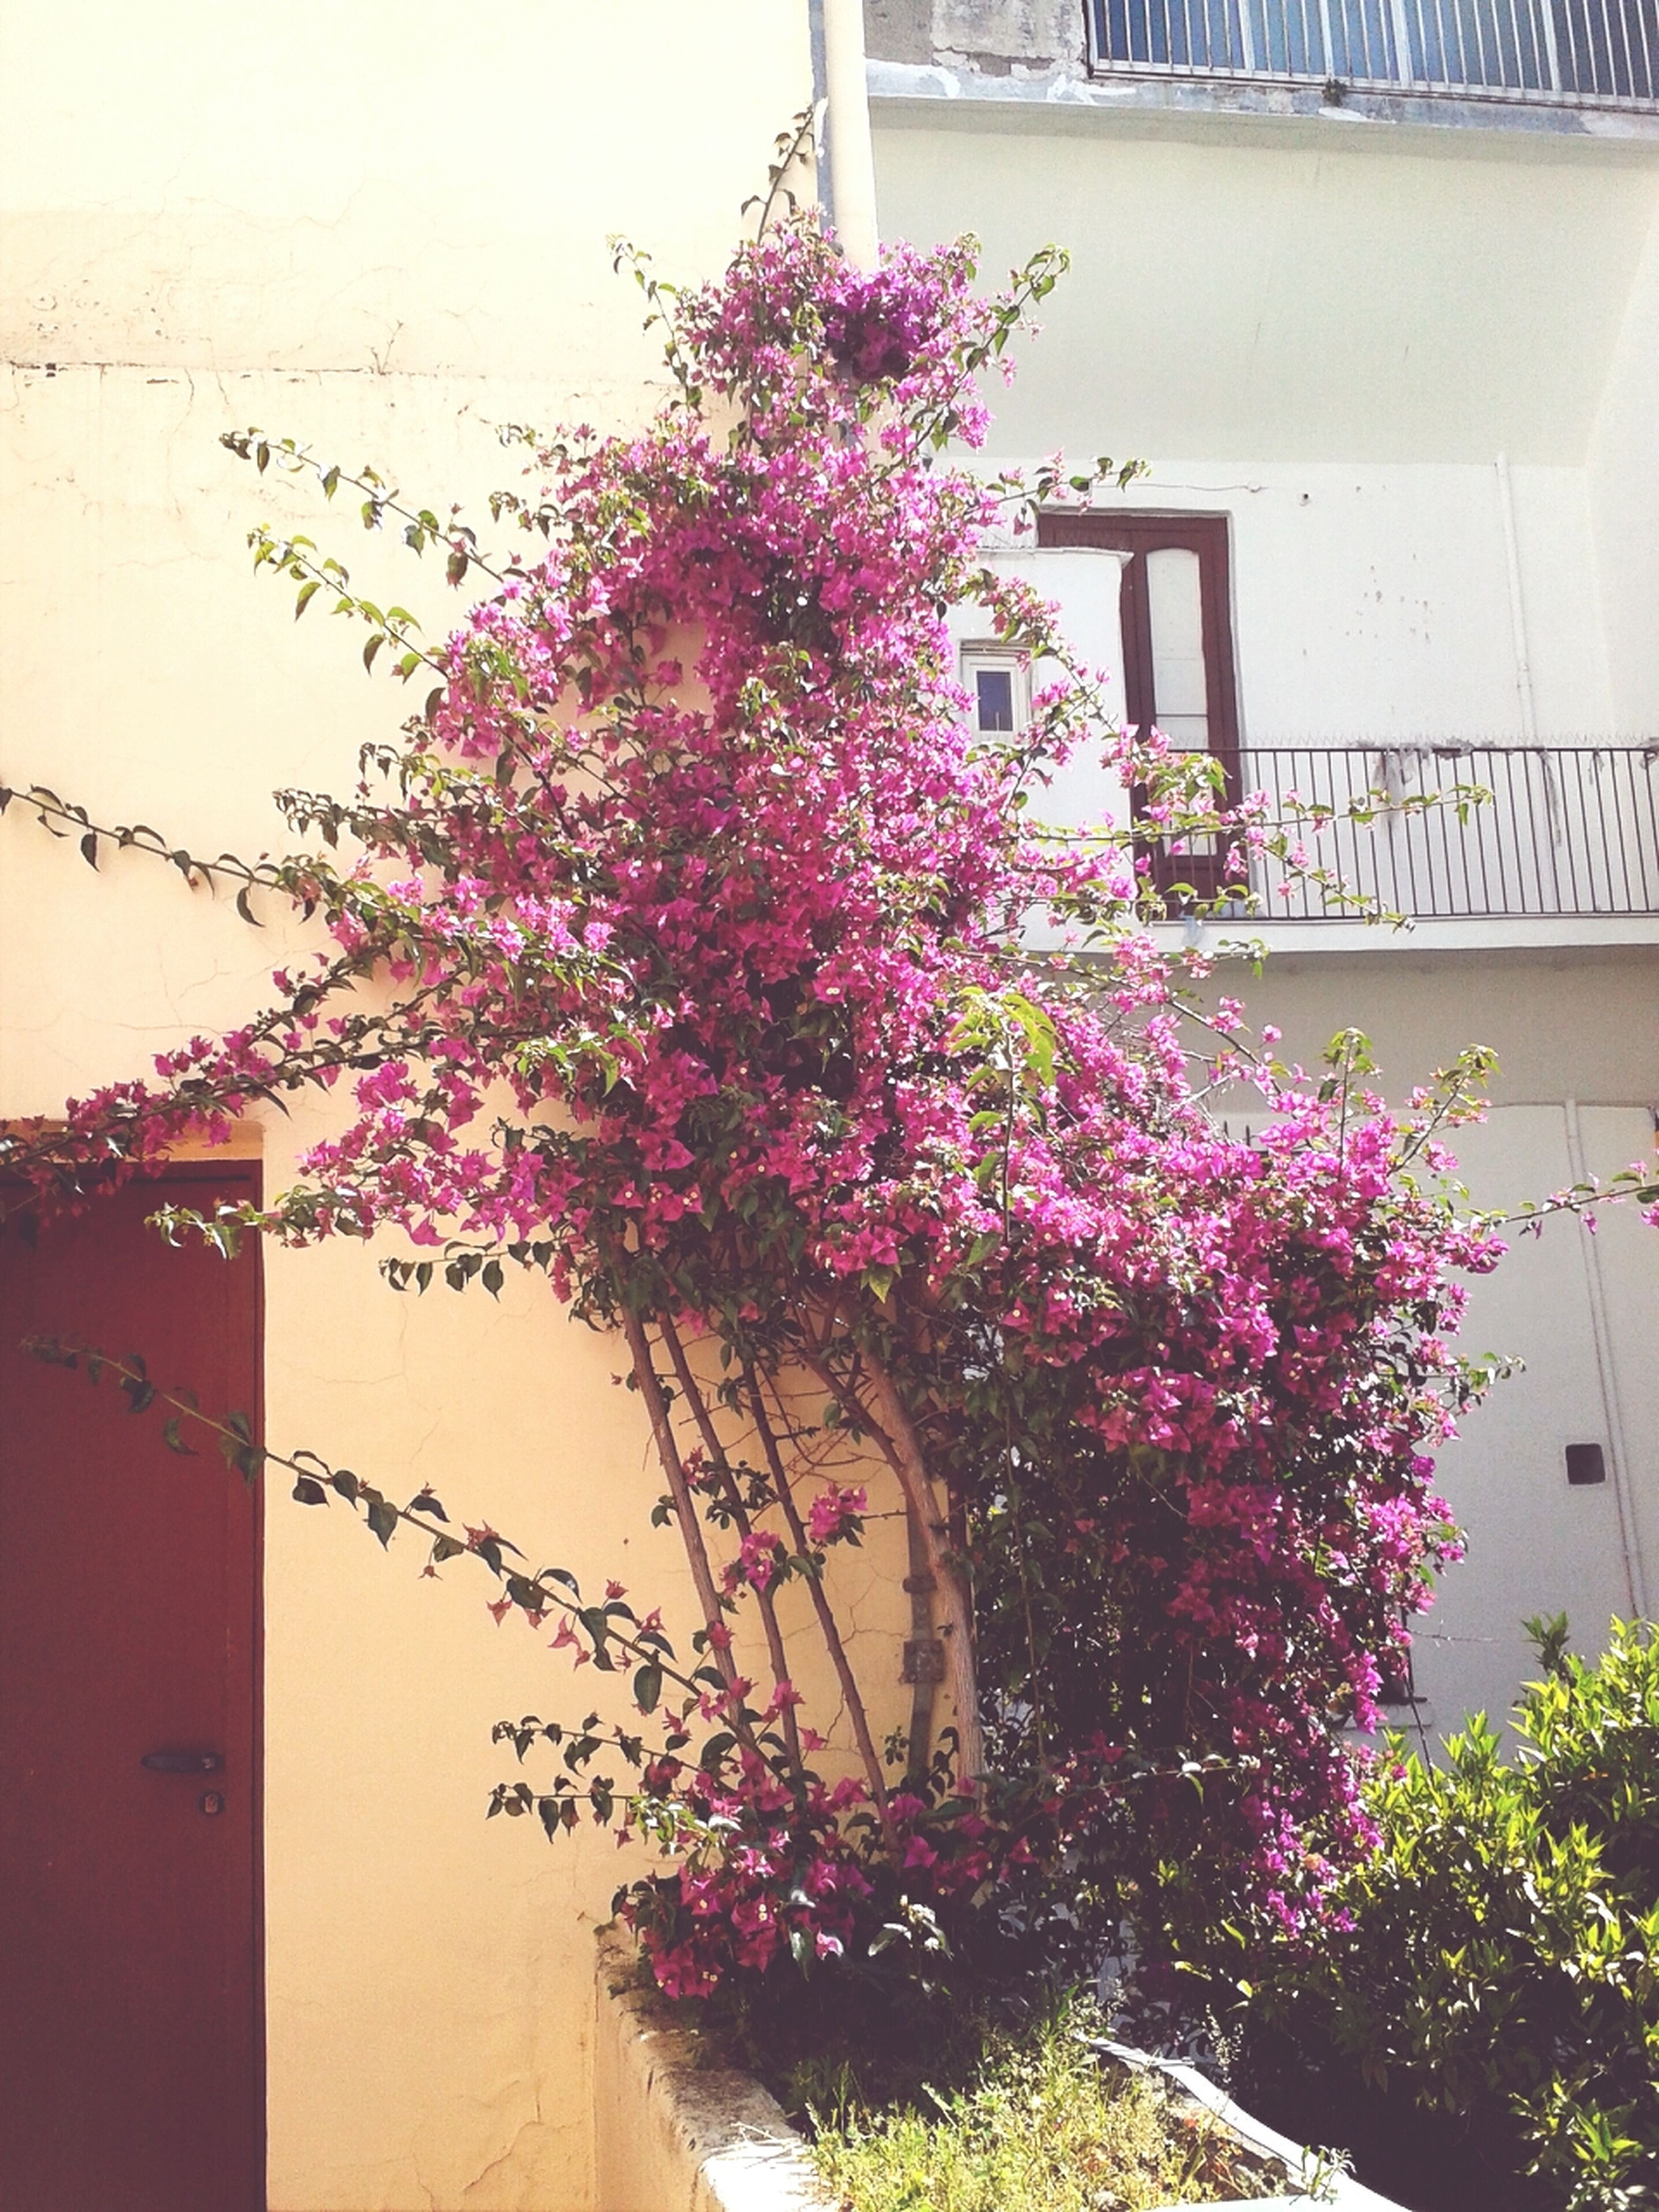 flower, building exterior, architecture, built structure, growth, plant, house, freshness, pink color, potted plant, tree, fragility, low angle view, nature, wall - building feature, residential structure, beauty in nature, residential building, window, in bloom